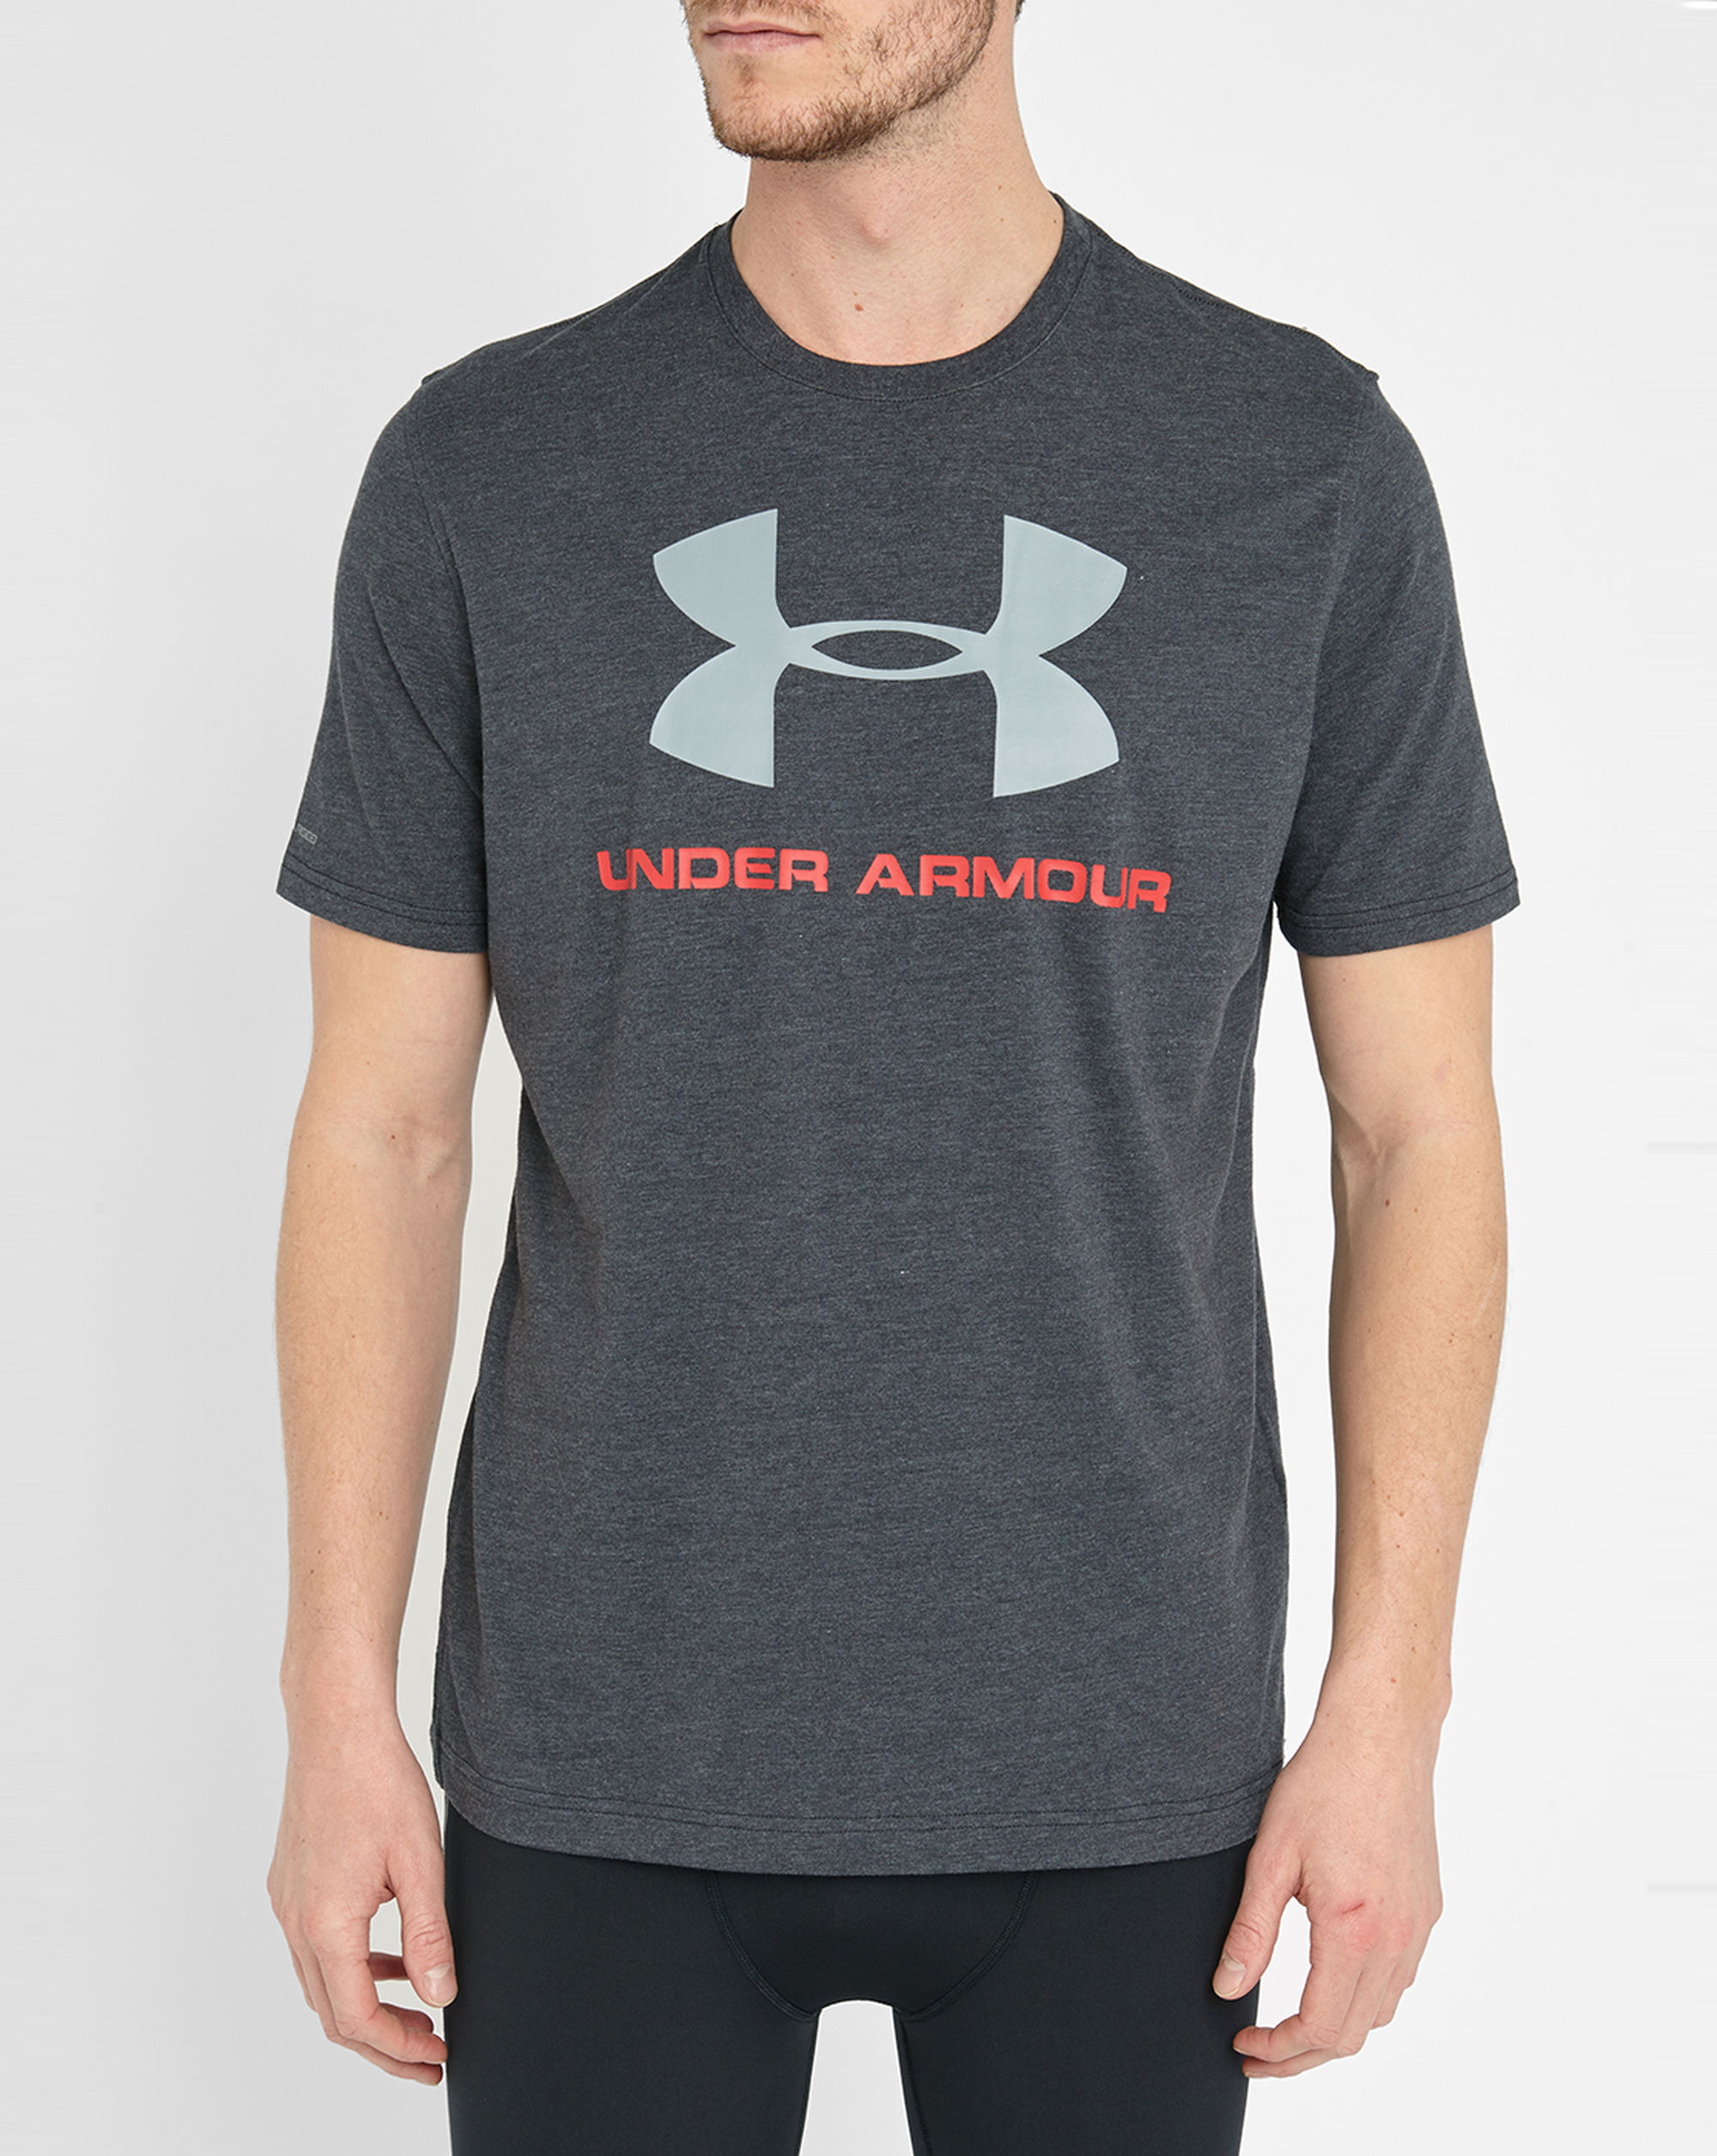 Under Armour Grey Cotton Logo T Shirt In Gray For Men Lyst